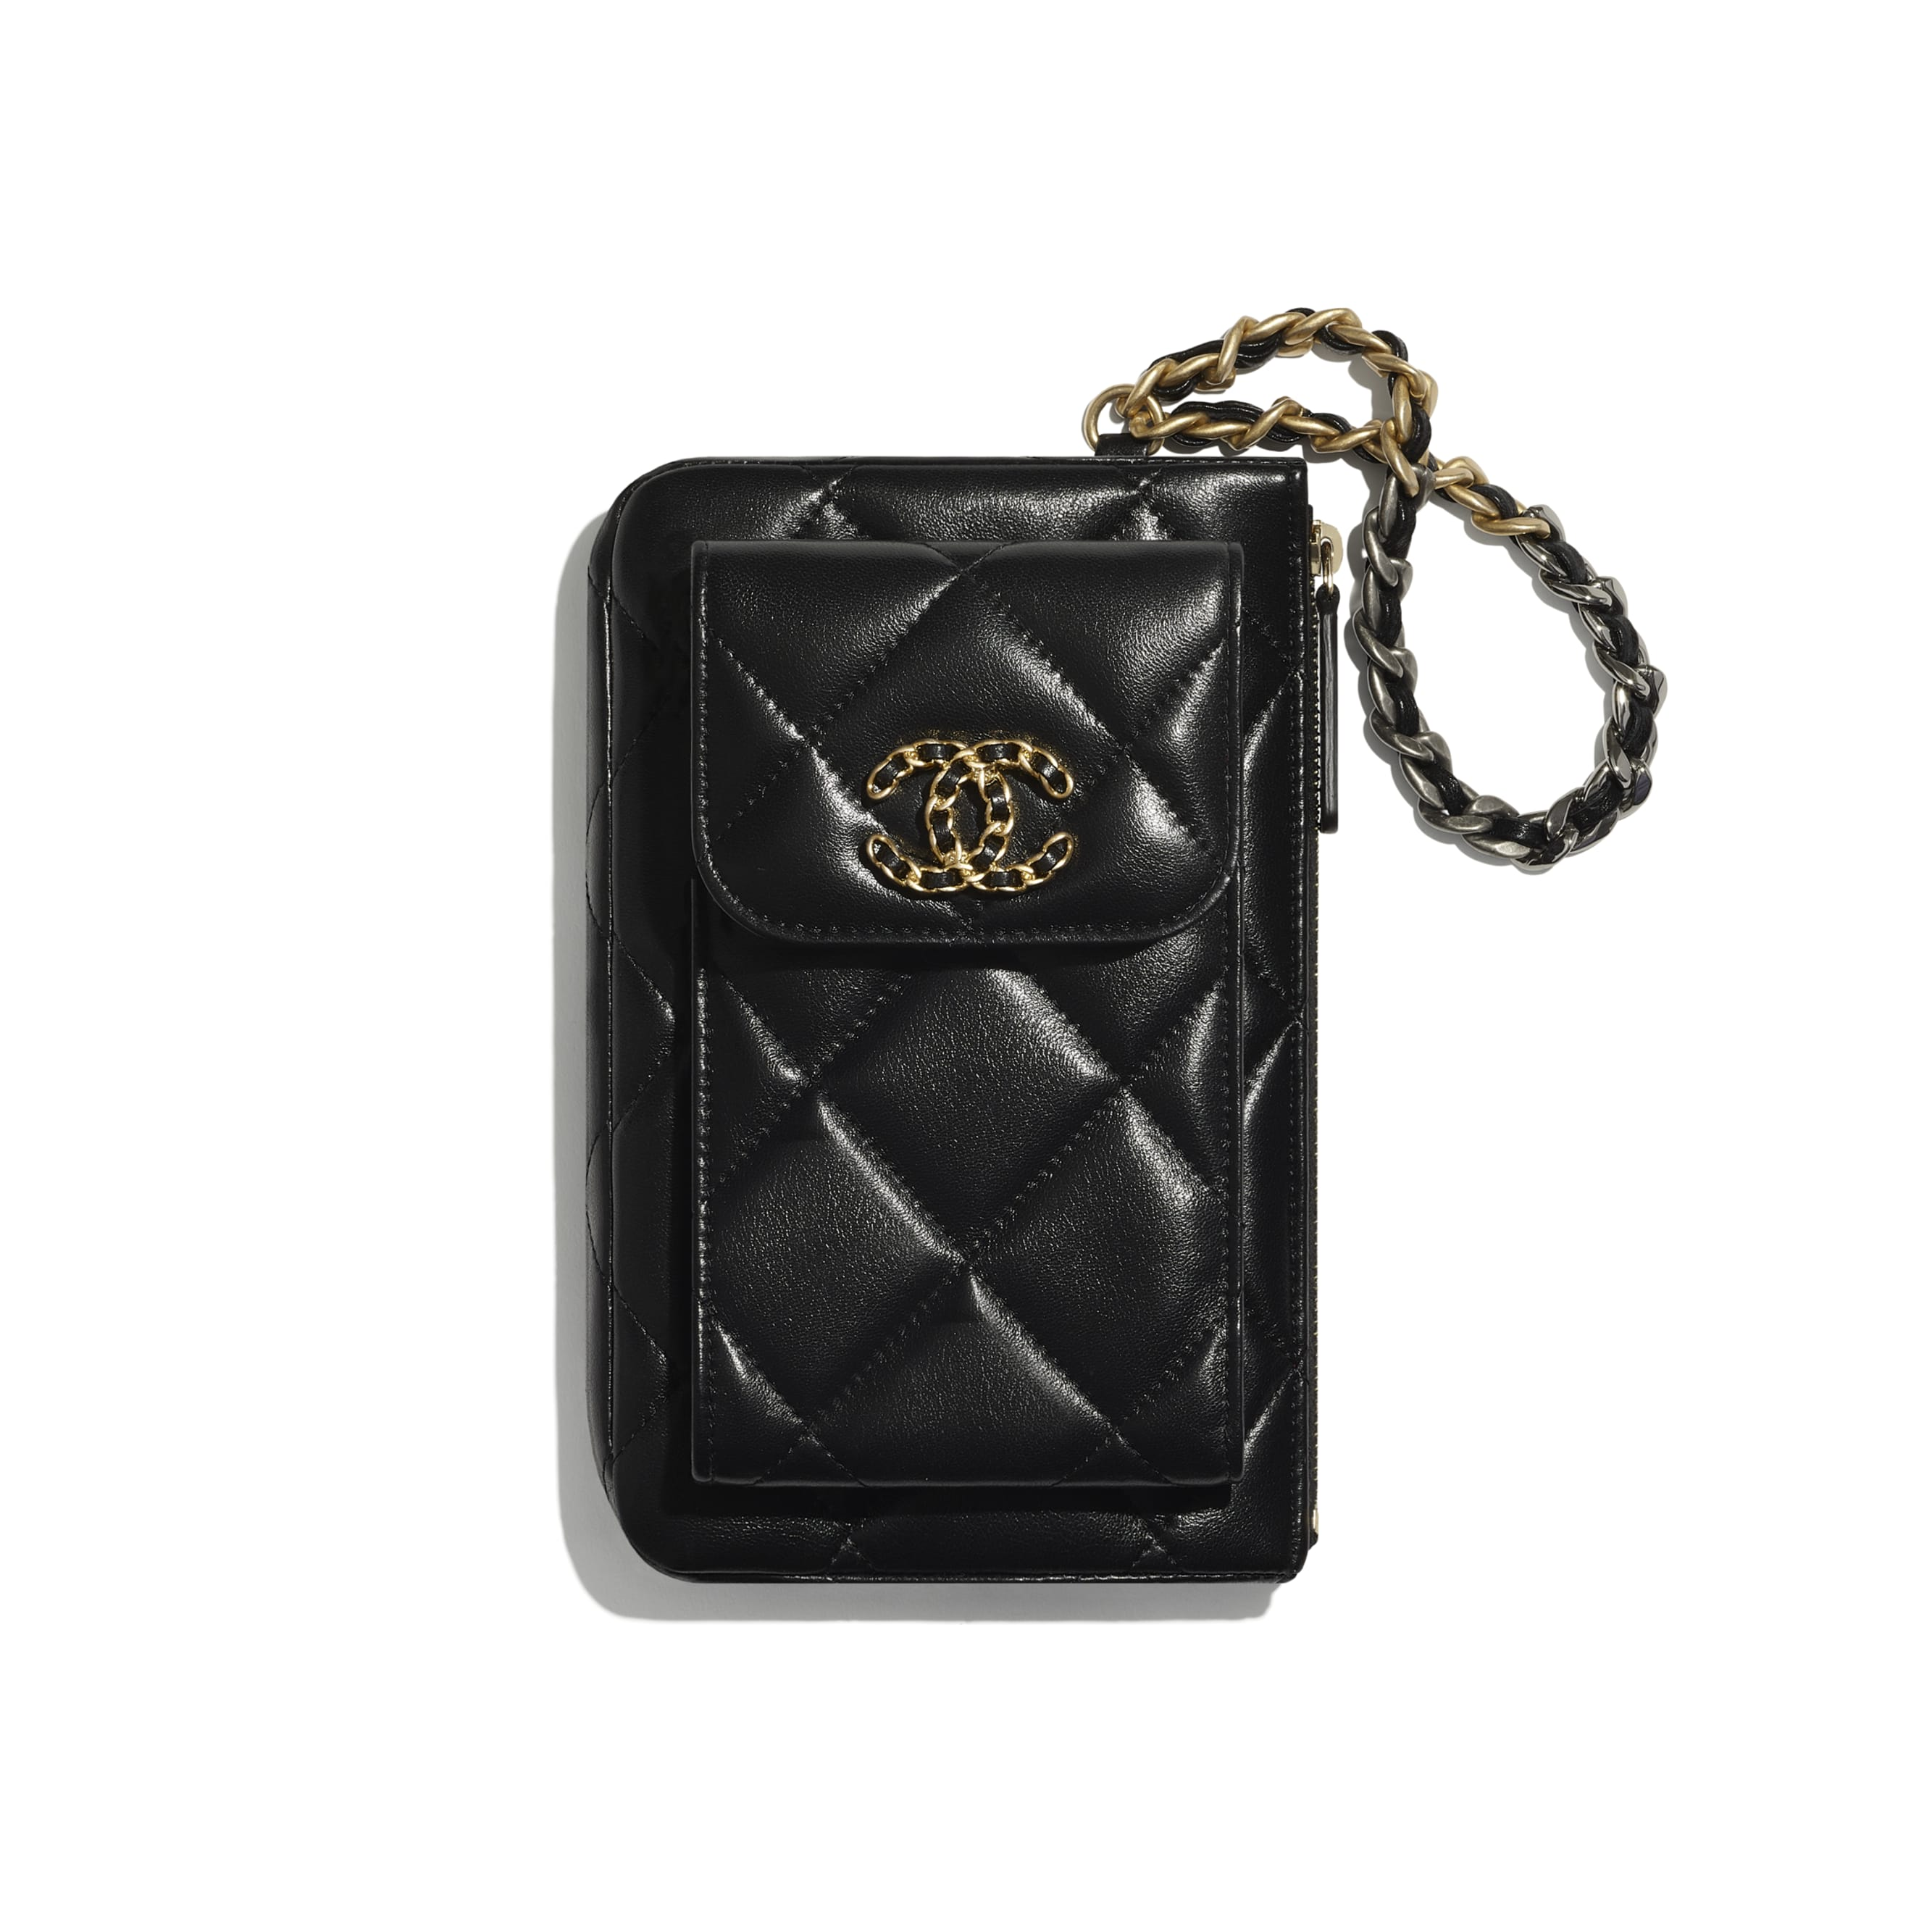 CHANEL 19 Pouch with Handle - Black - Lambskin, Gold-Tone, Silver-Tone & Ruthenium-Finish Metal - CHANEL - Default view - see standard sized version